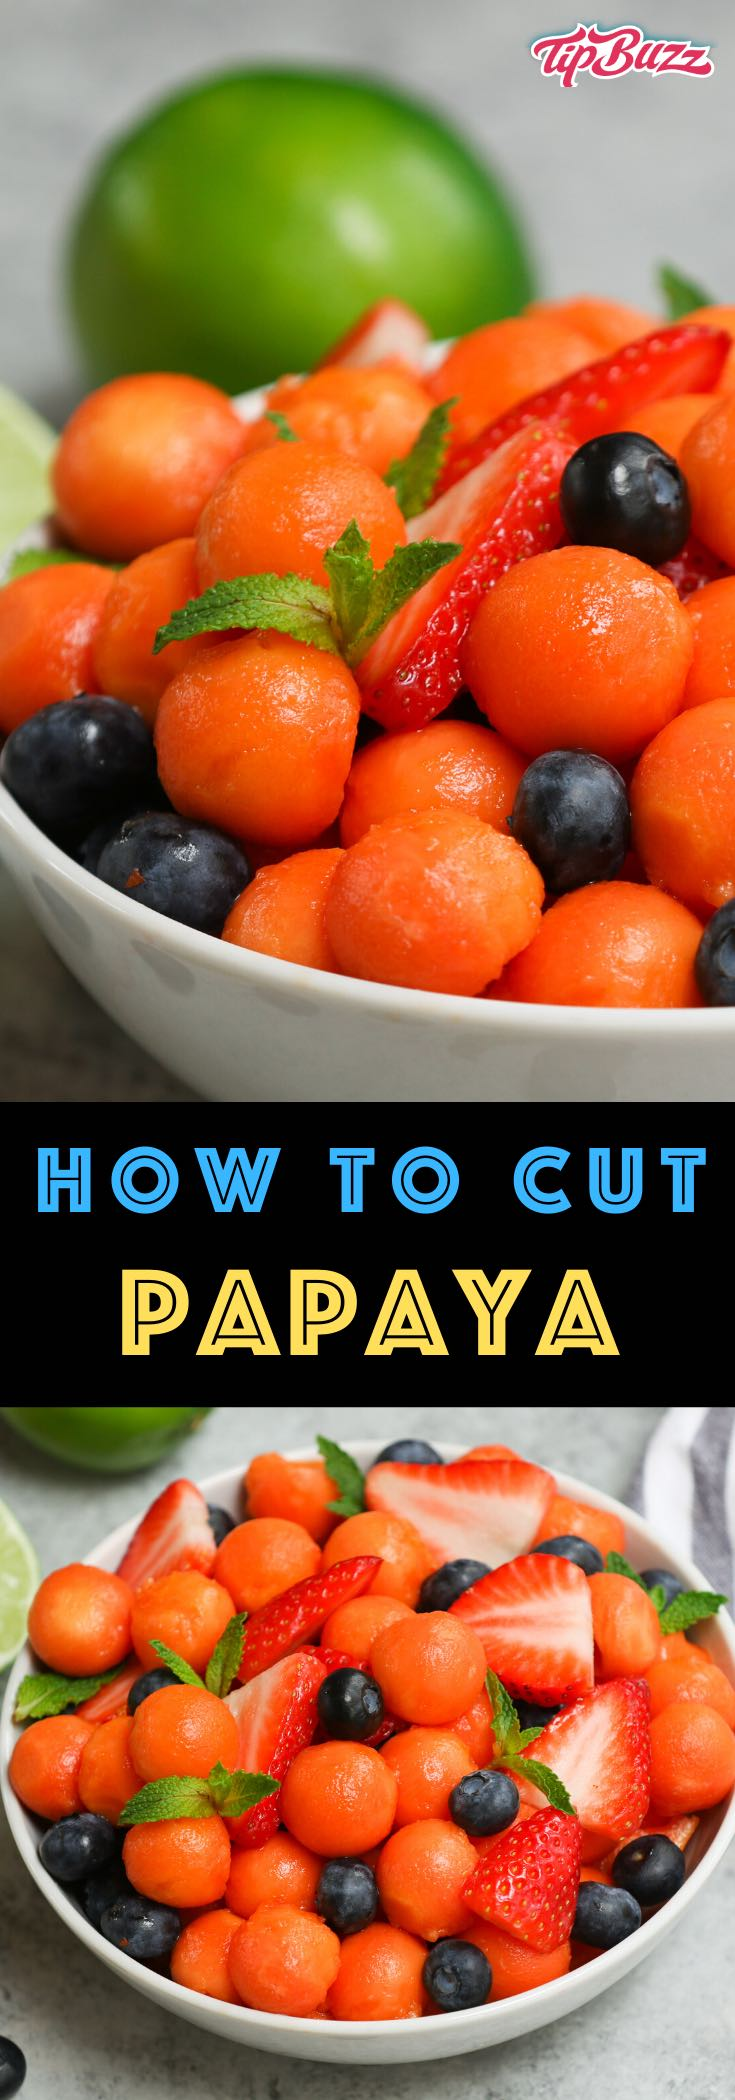 Learn how to cut and eat papaya so you can enjoy this nutritious tropical fruit! It's packed with health benefits and is a great snack or addition to fruit salads, smoothies, desserts and more.